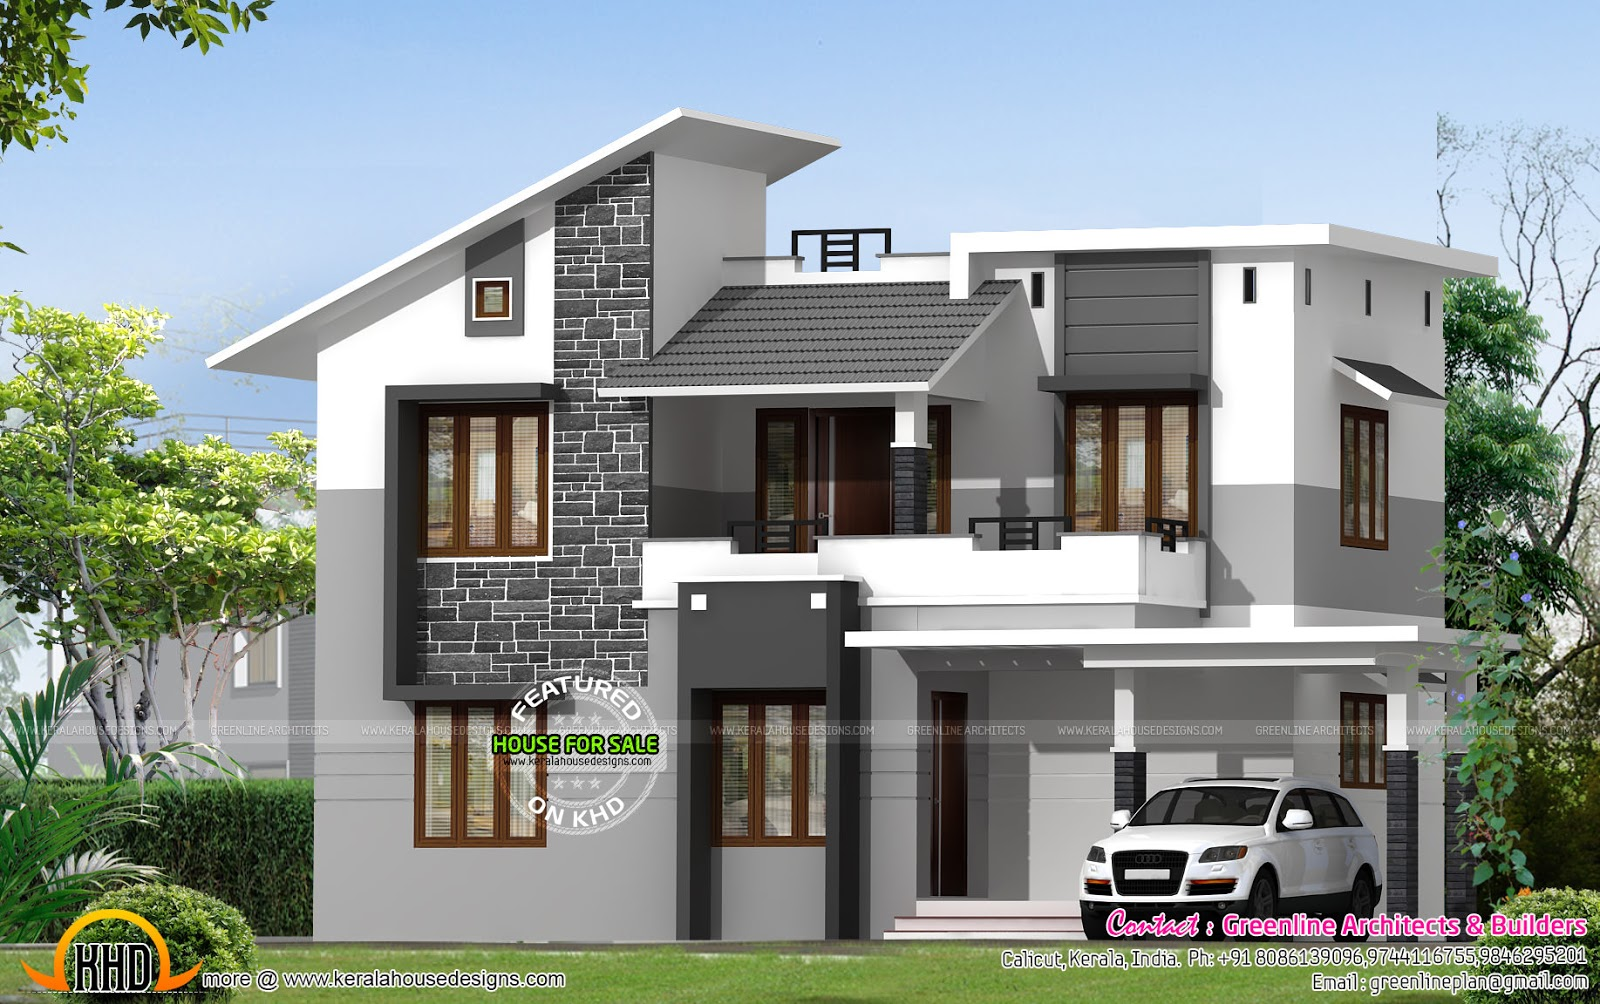 2 types of villa home plans kerala home design and floor for Modern home plans for sale